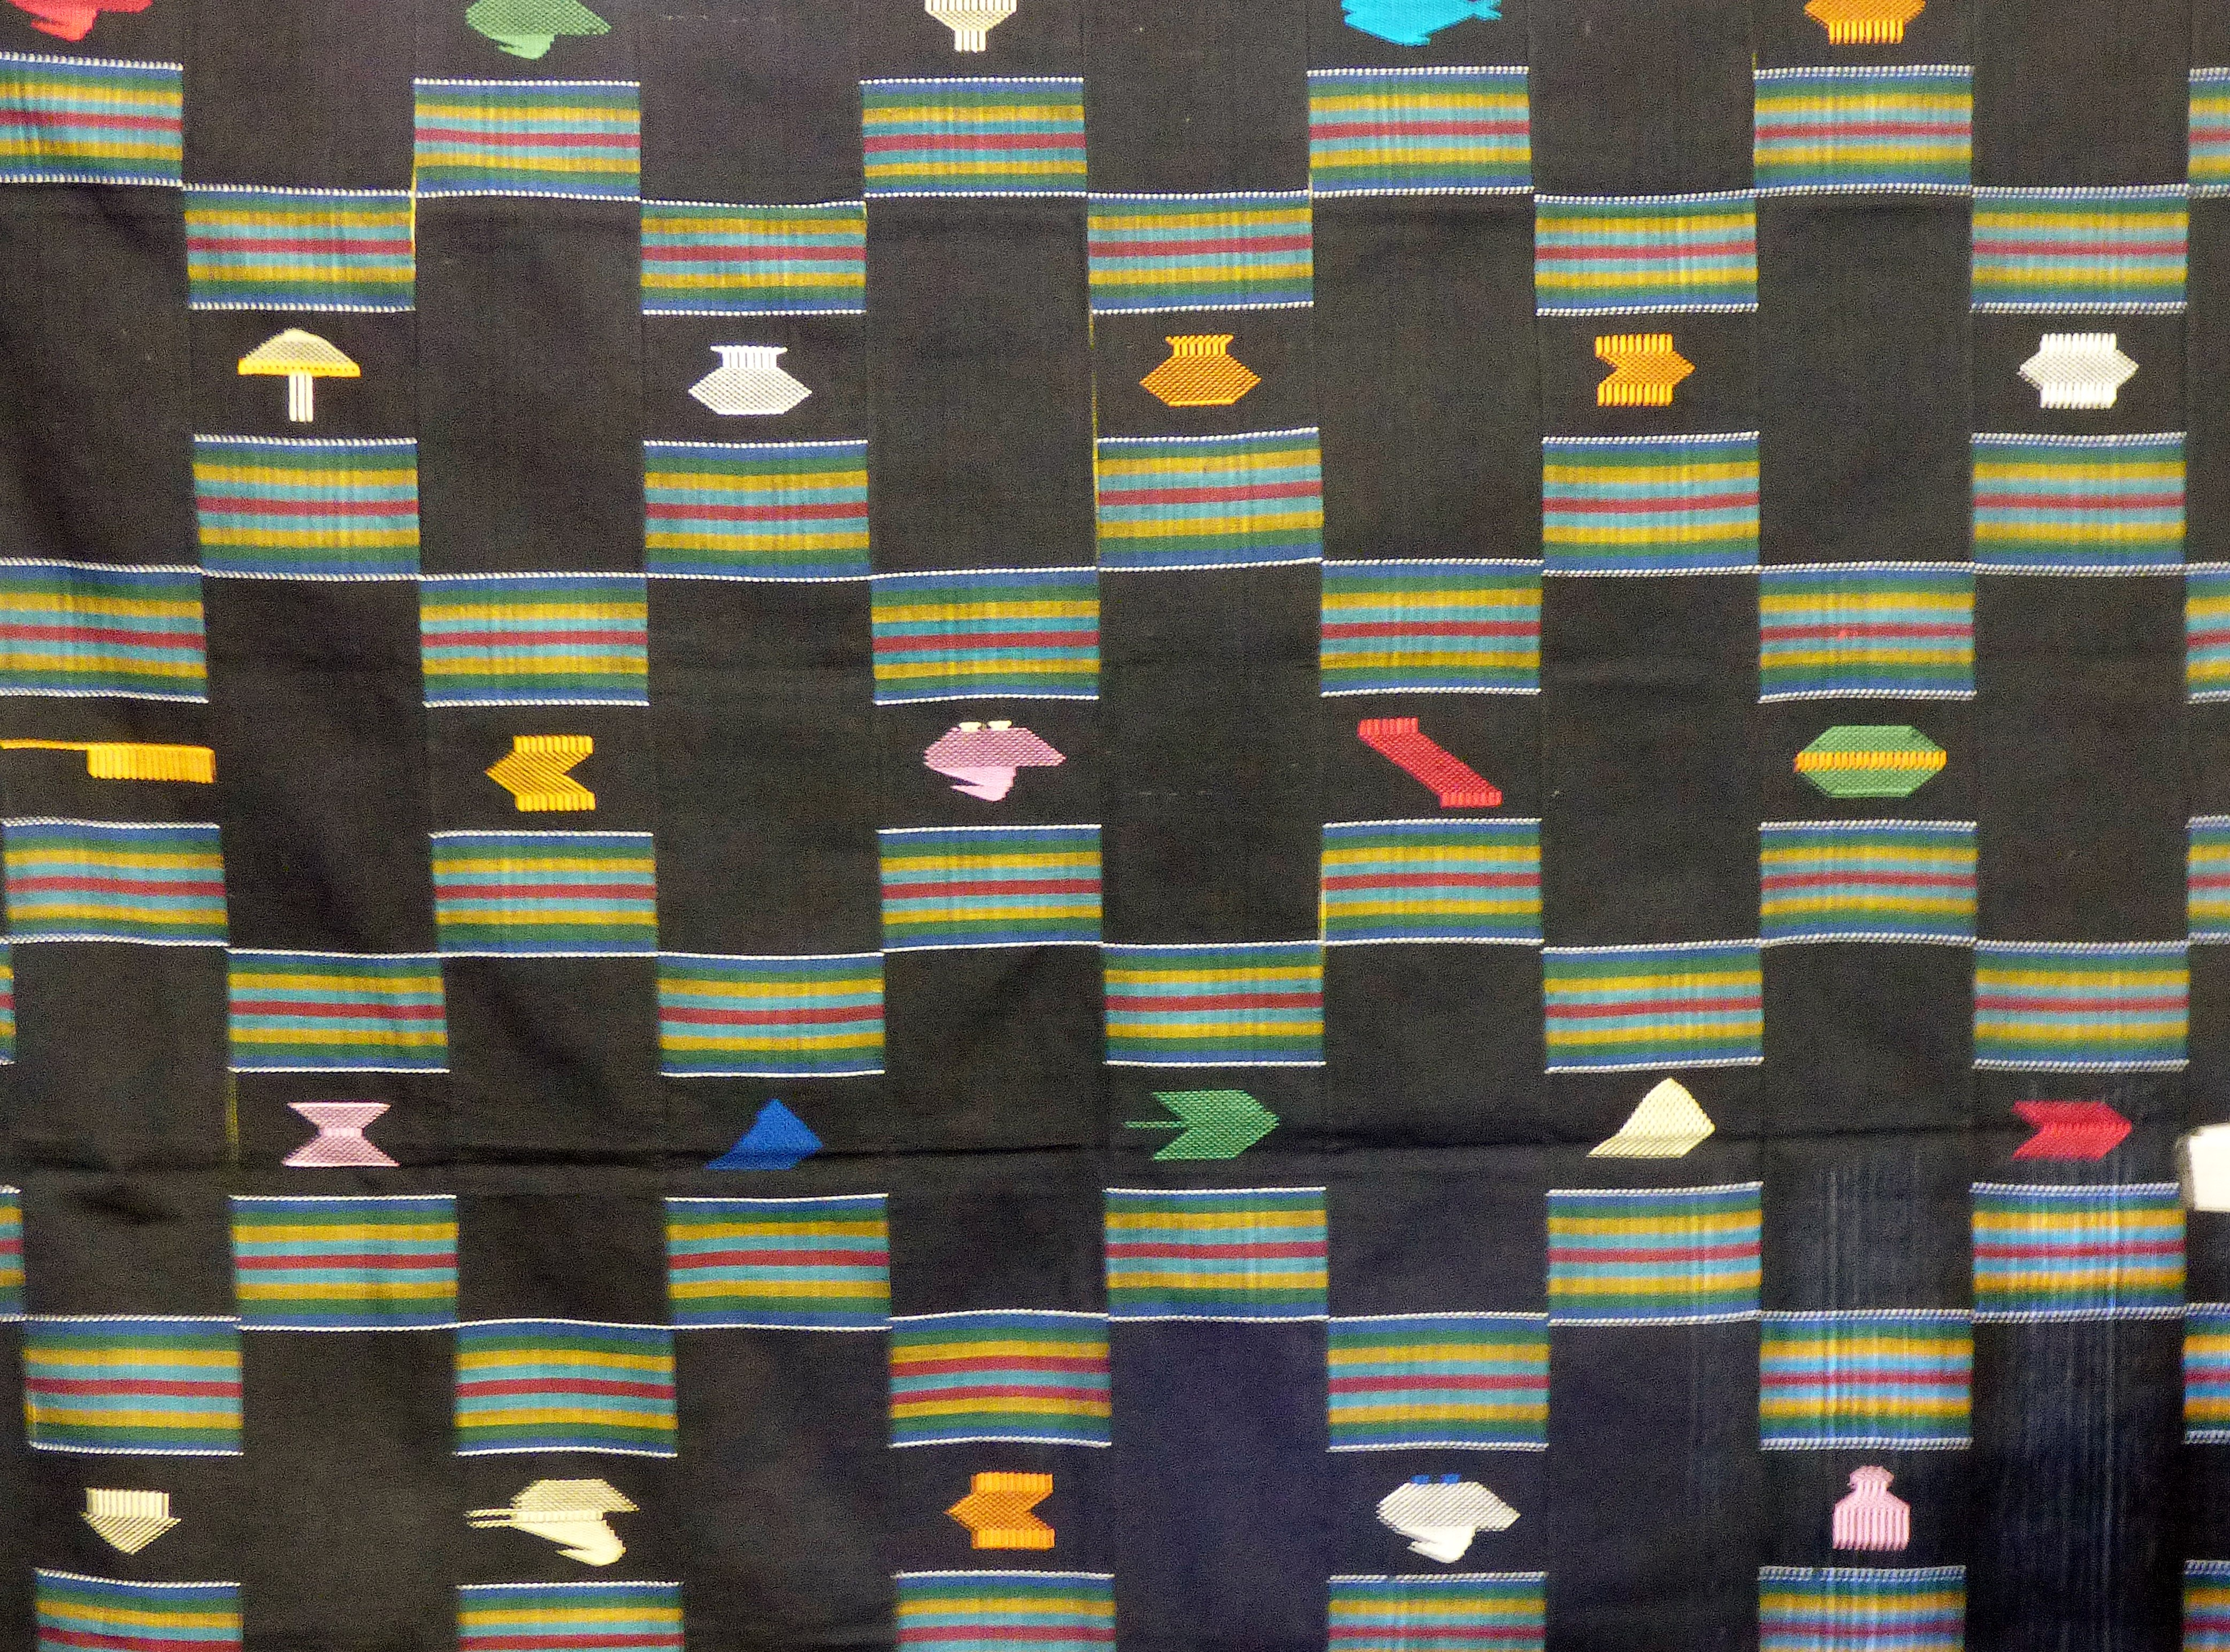 West African strip cloth shown by Magi Relph